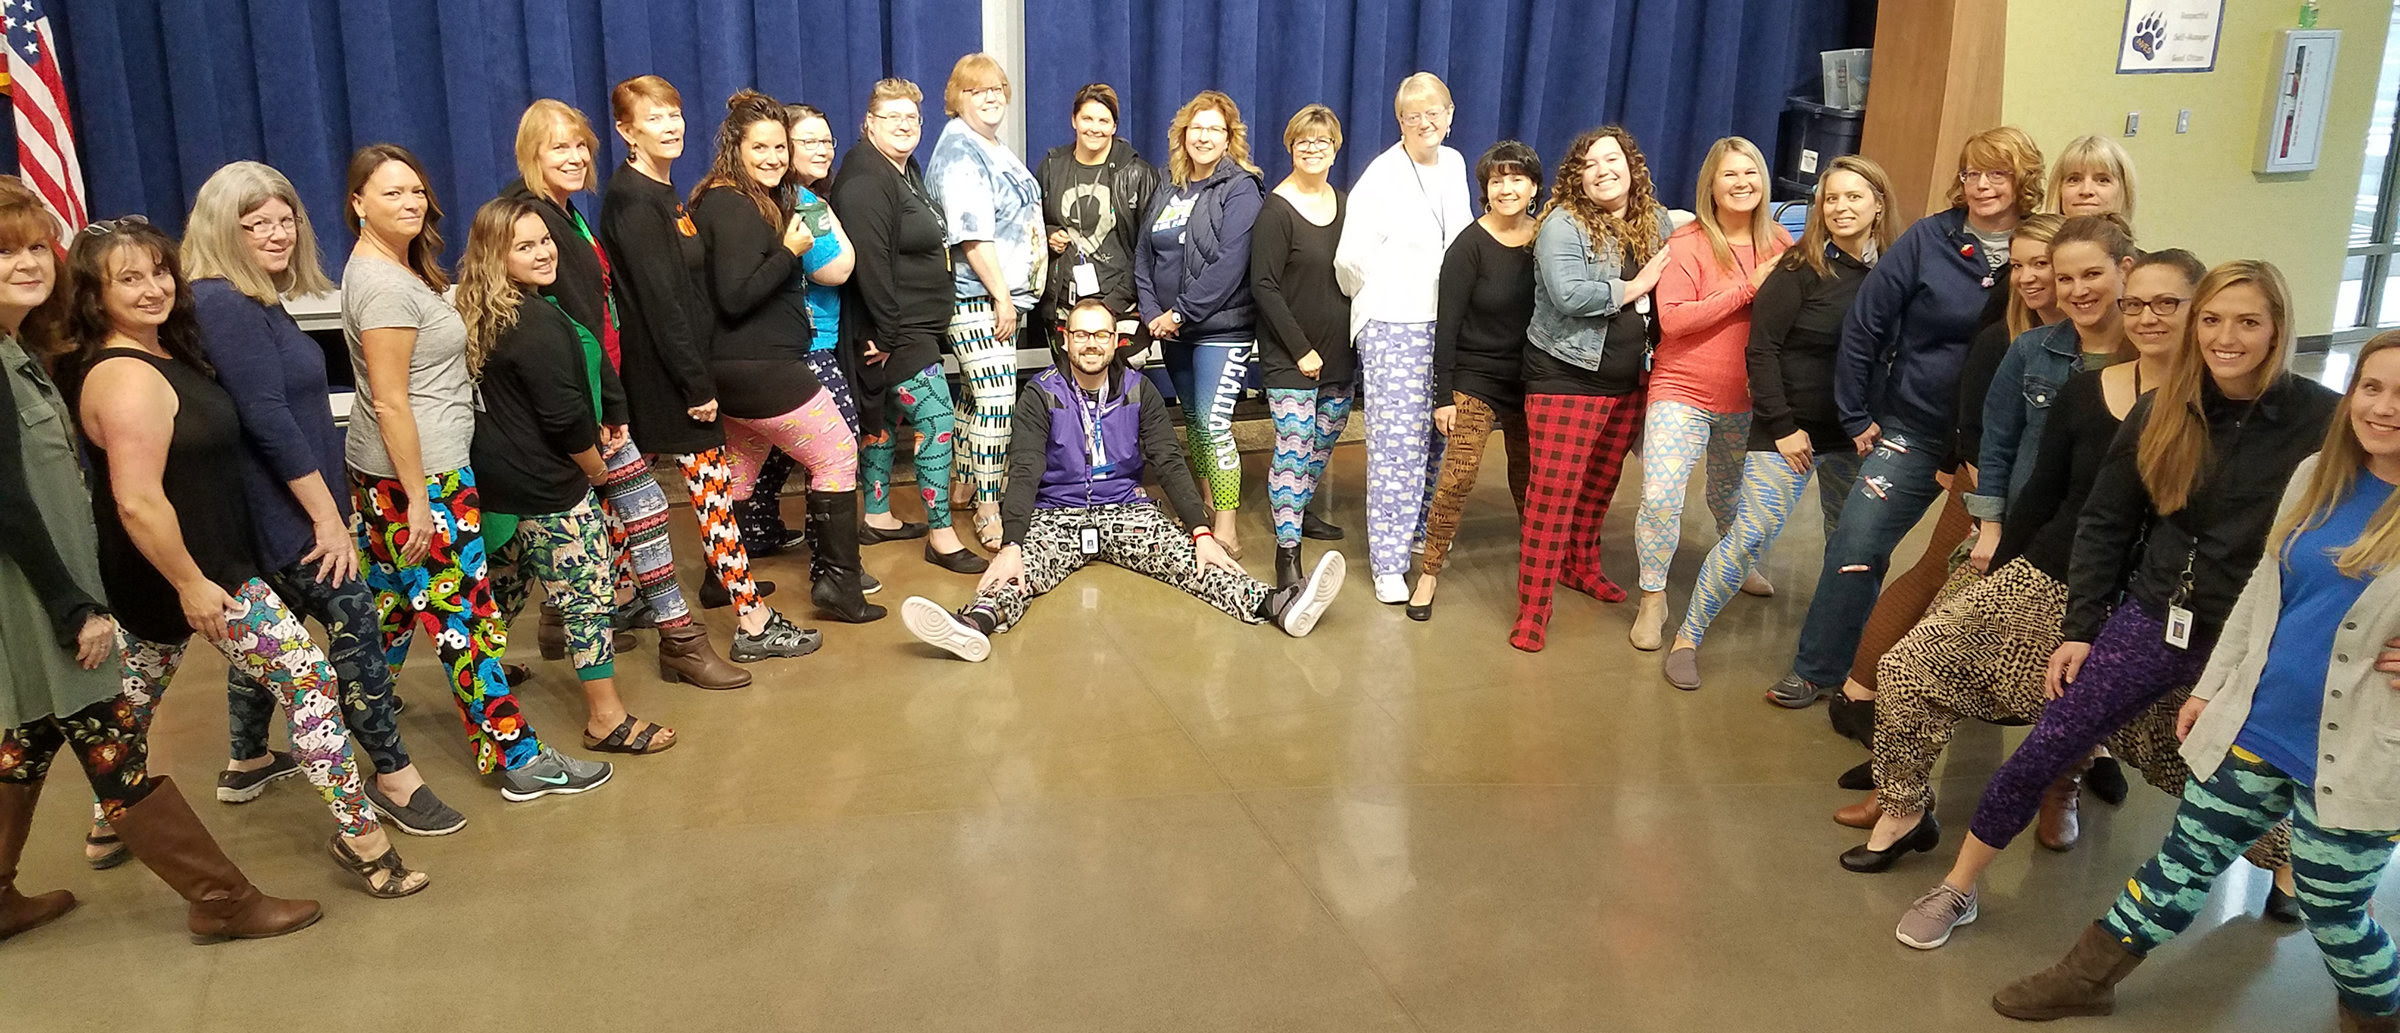 Crazy Pants at the Elementary